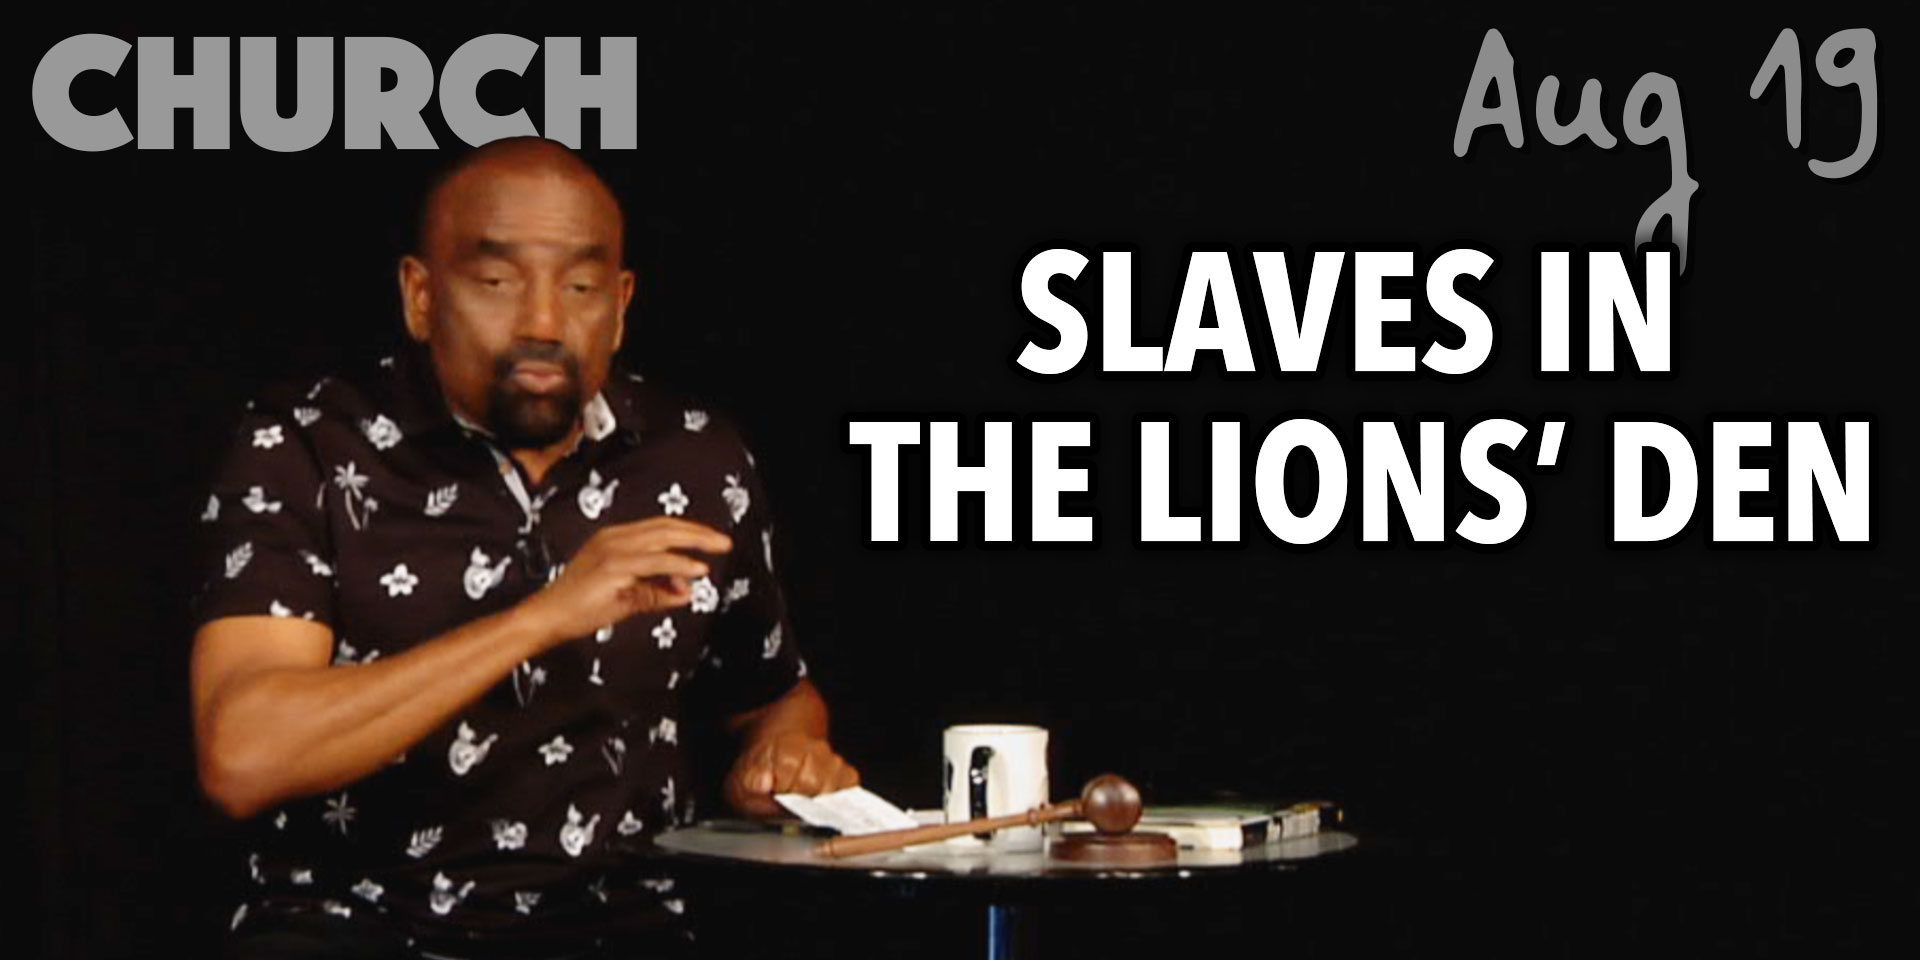 Slaves in the Lions' Den (Church, Aug 19)